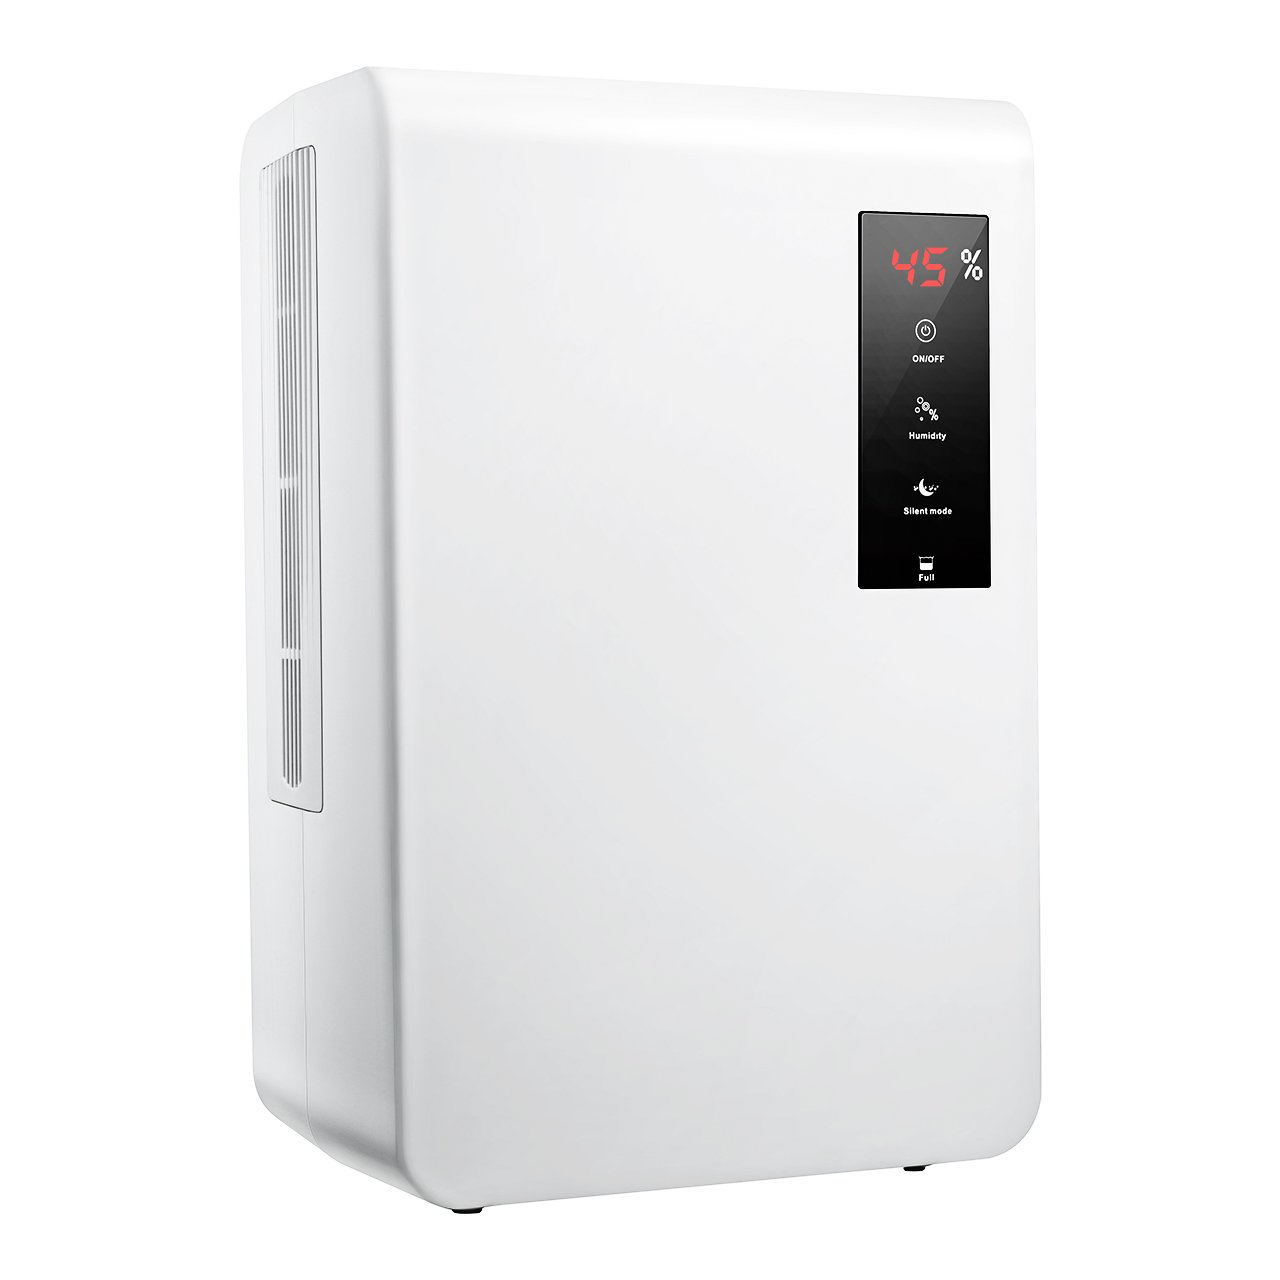 VicTsing Dehumidifier, With 3L/102.5oz Water Tank, Upgraded Touch Screen, Two Dehumidification Settings, Auto Shut off Function, Suits up to 215sq ft, Great for Kitchen, Bathroom, Bedroom, Garage